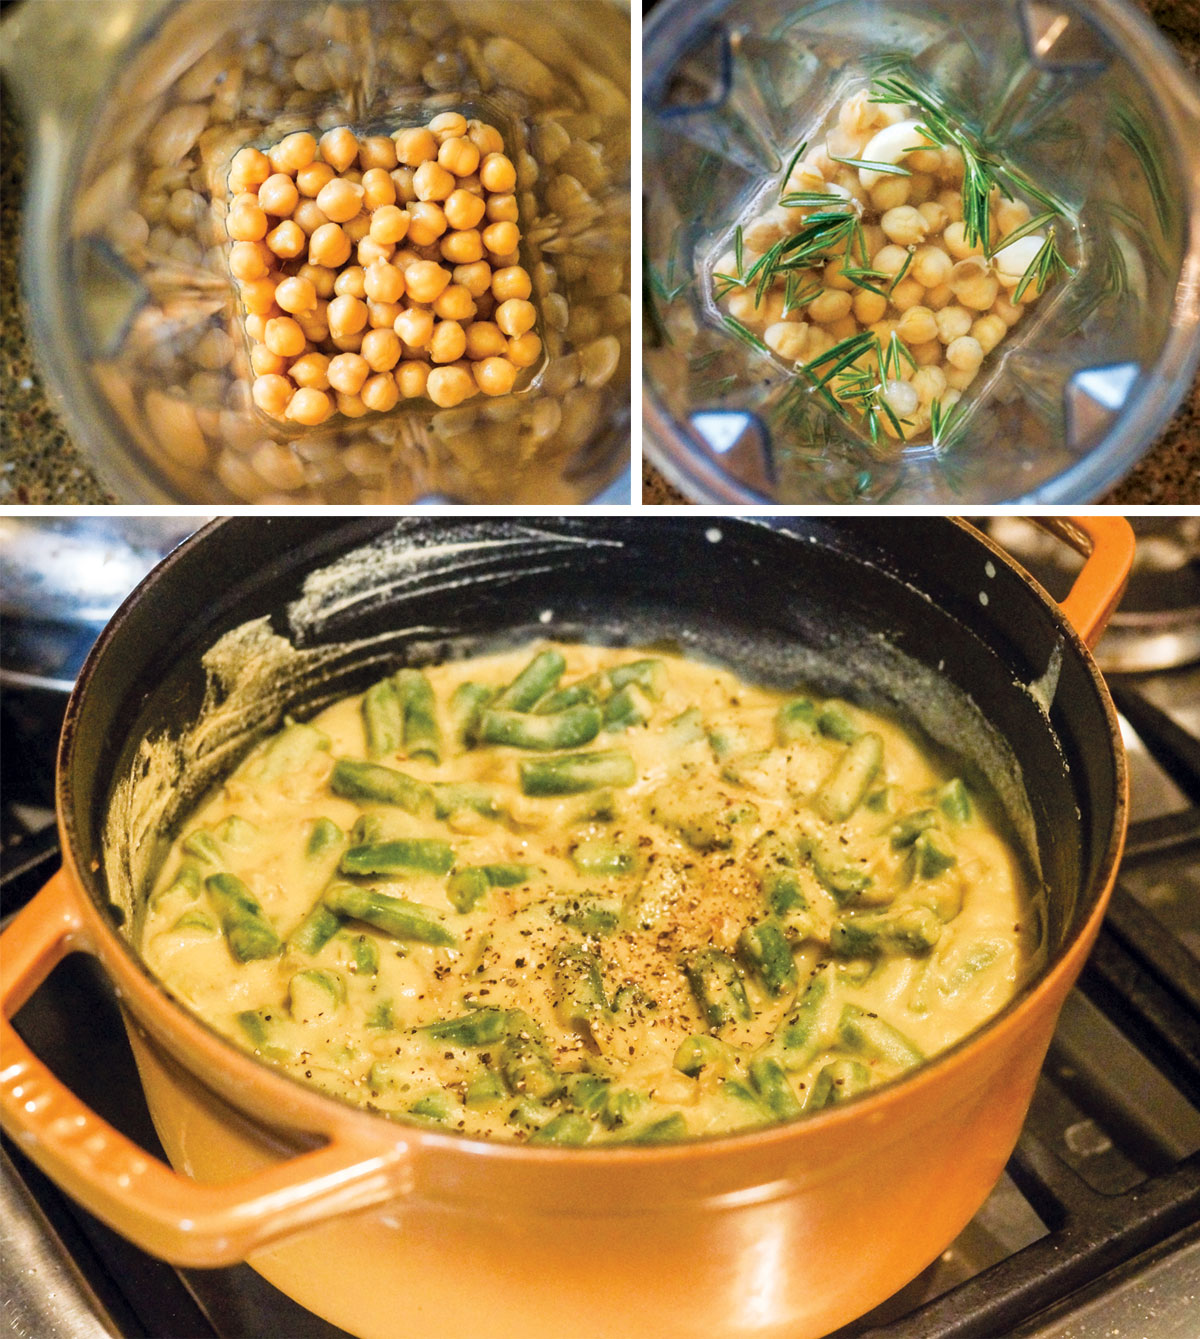 chickpeas in a blender and chickpea creamy sauce in a pot